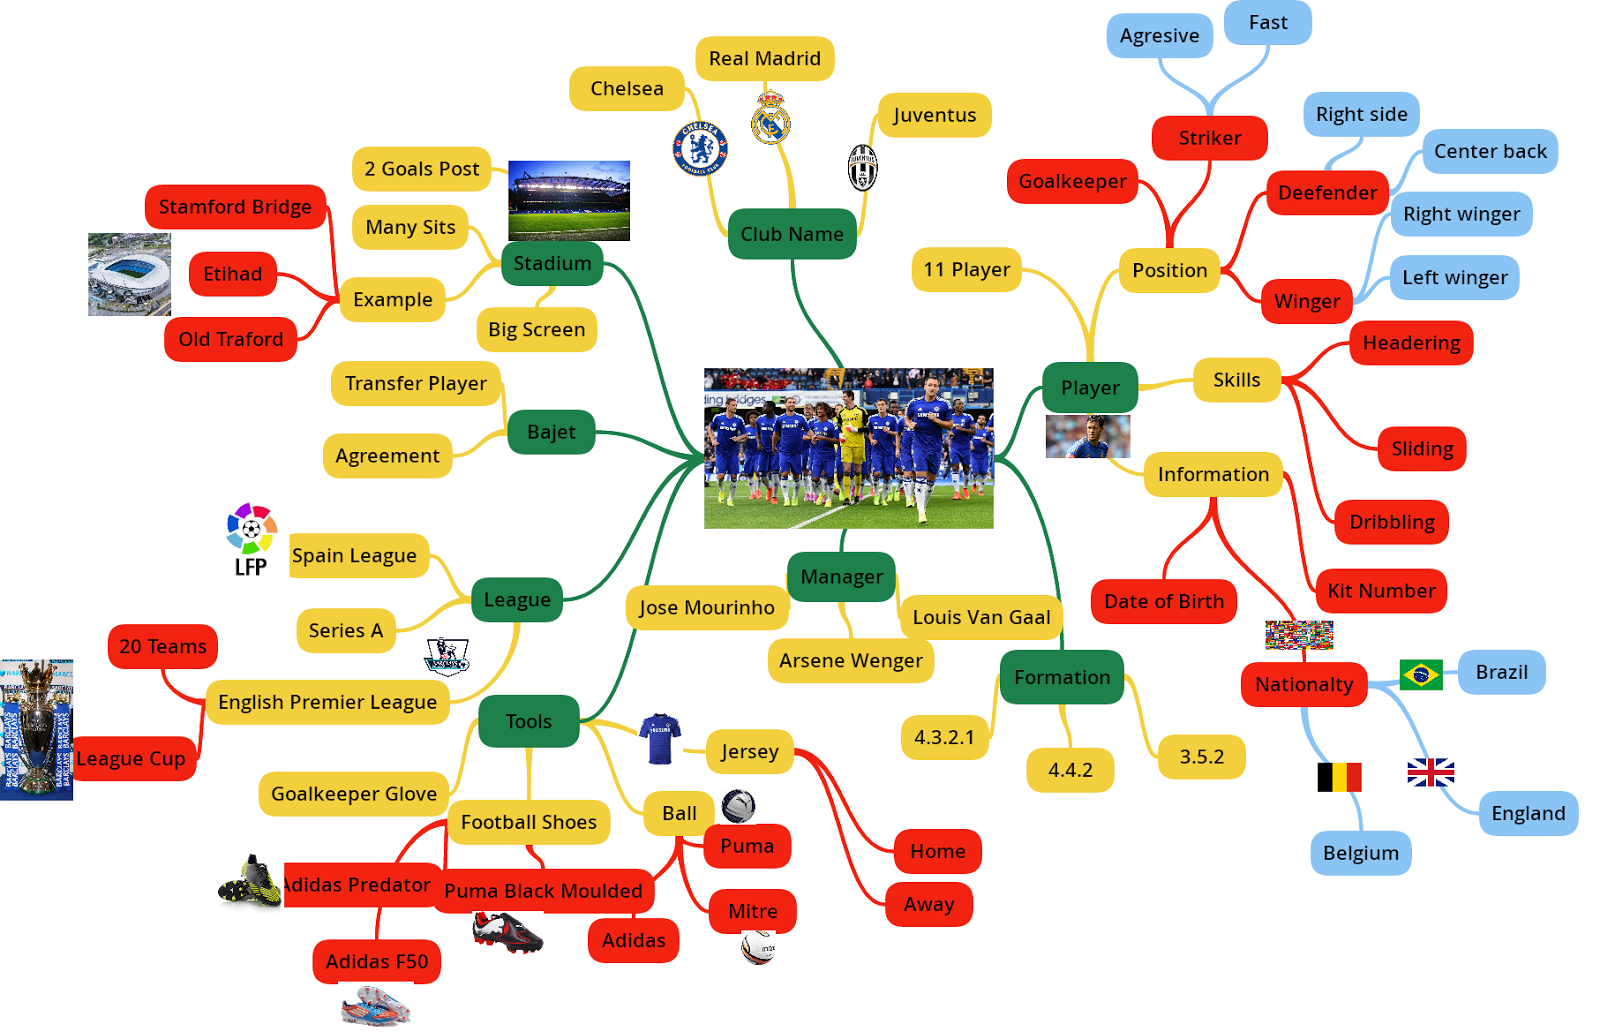 logical mind map is about football team